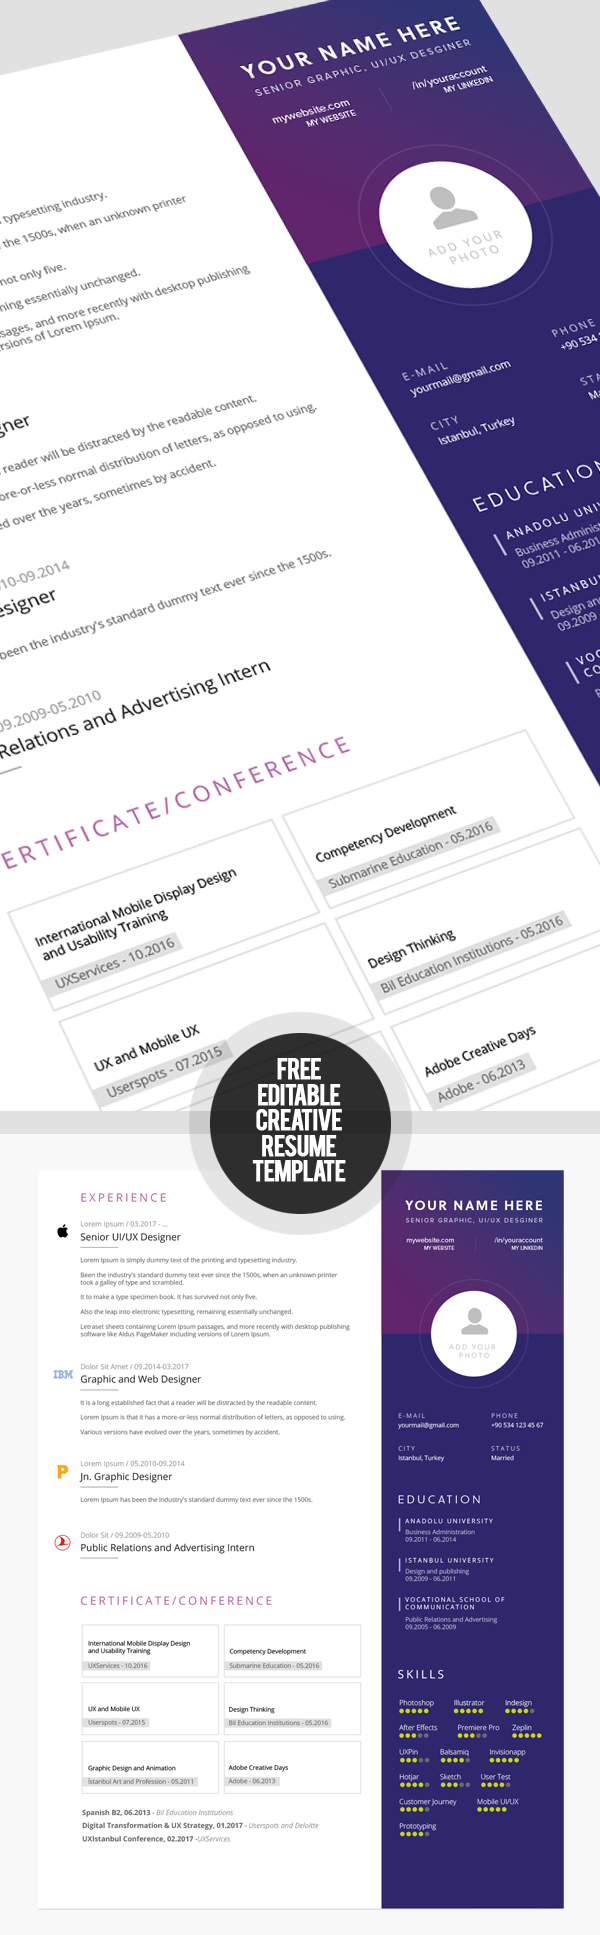 50 Free Cv Resume Templates Best For 2019 Design Graphic Design Junction